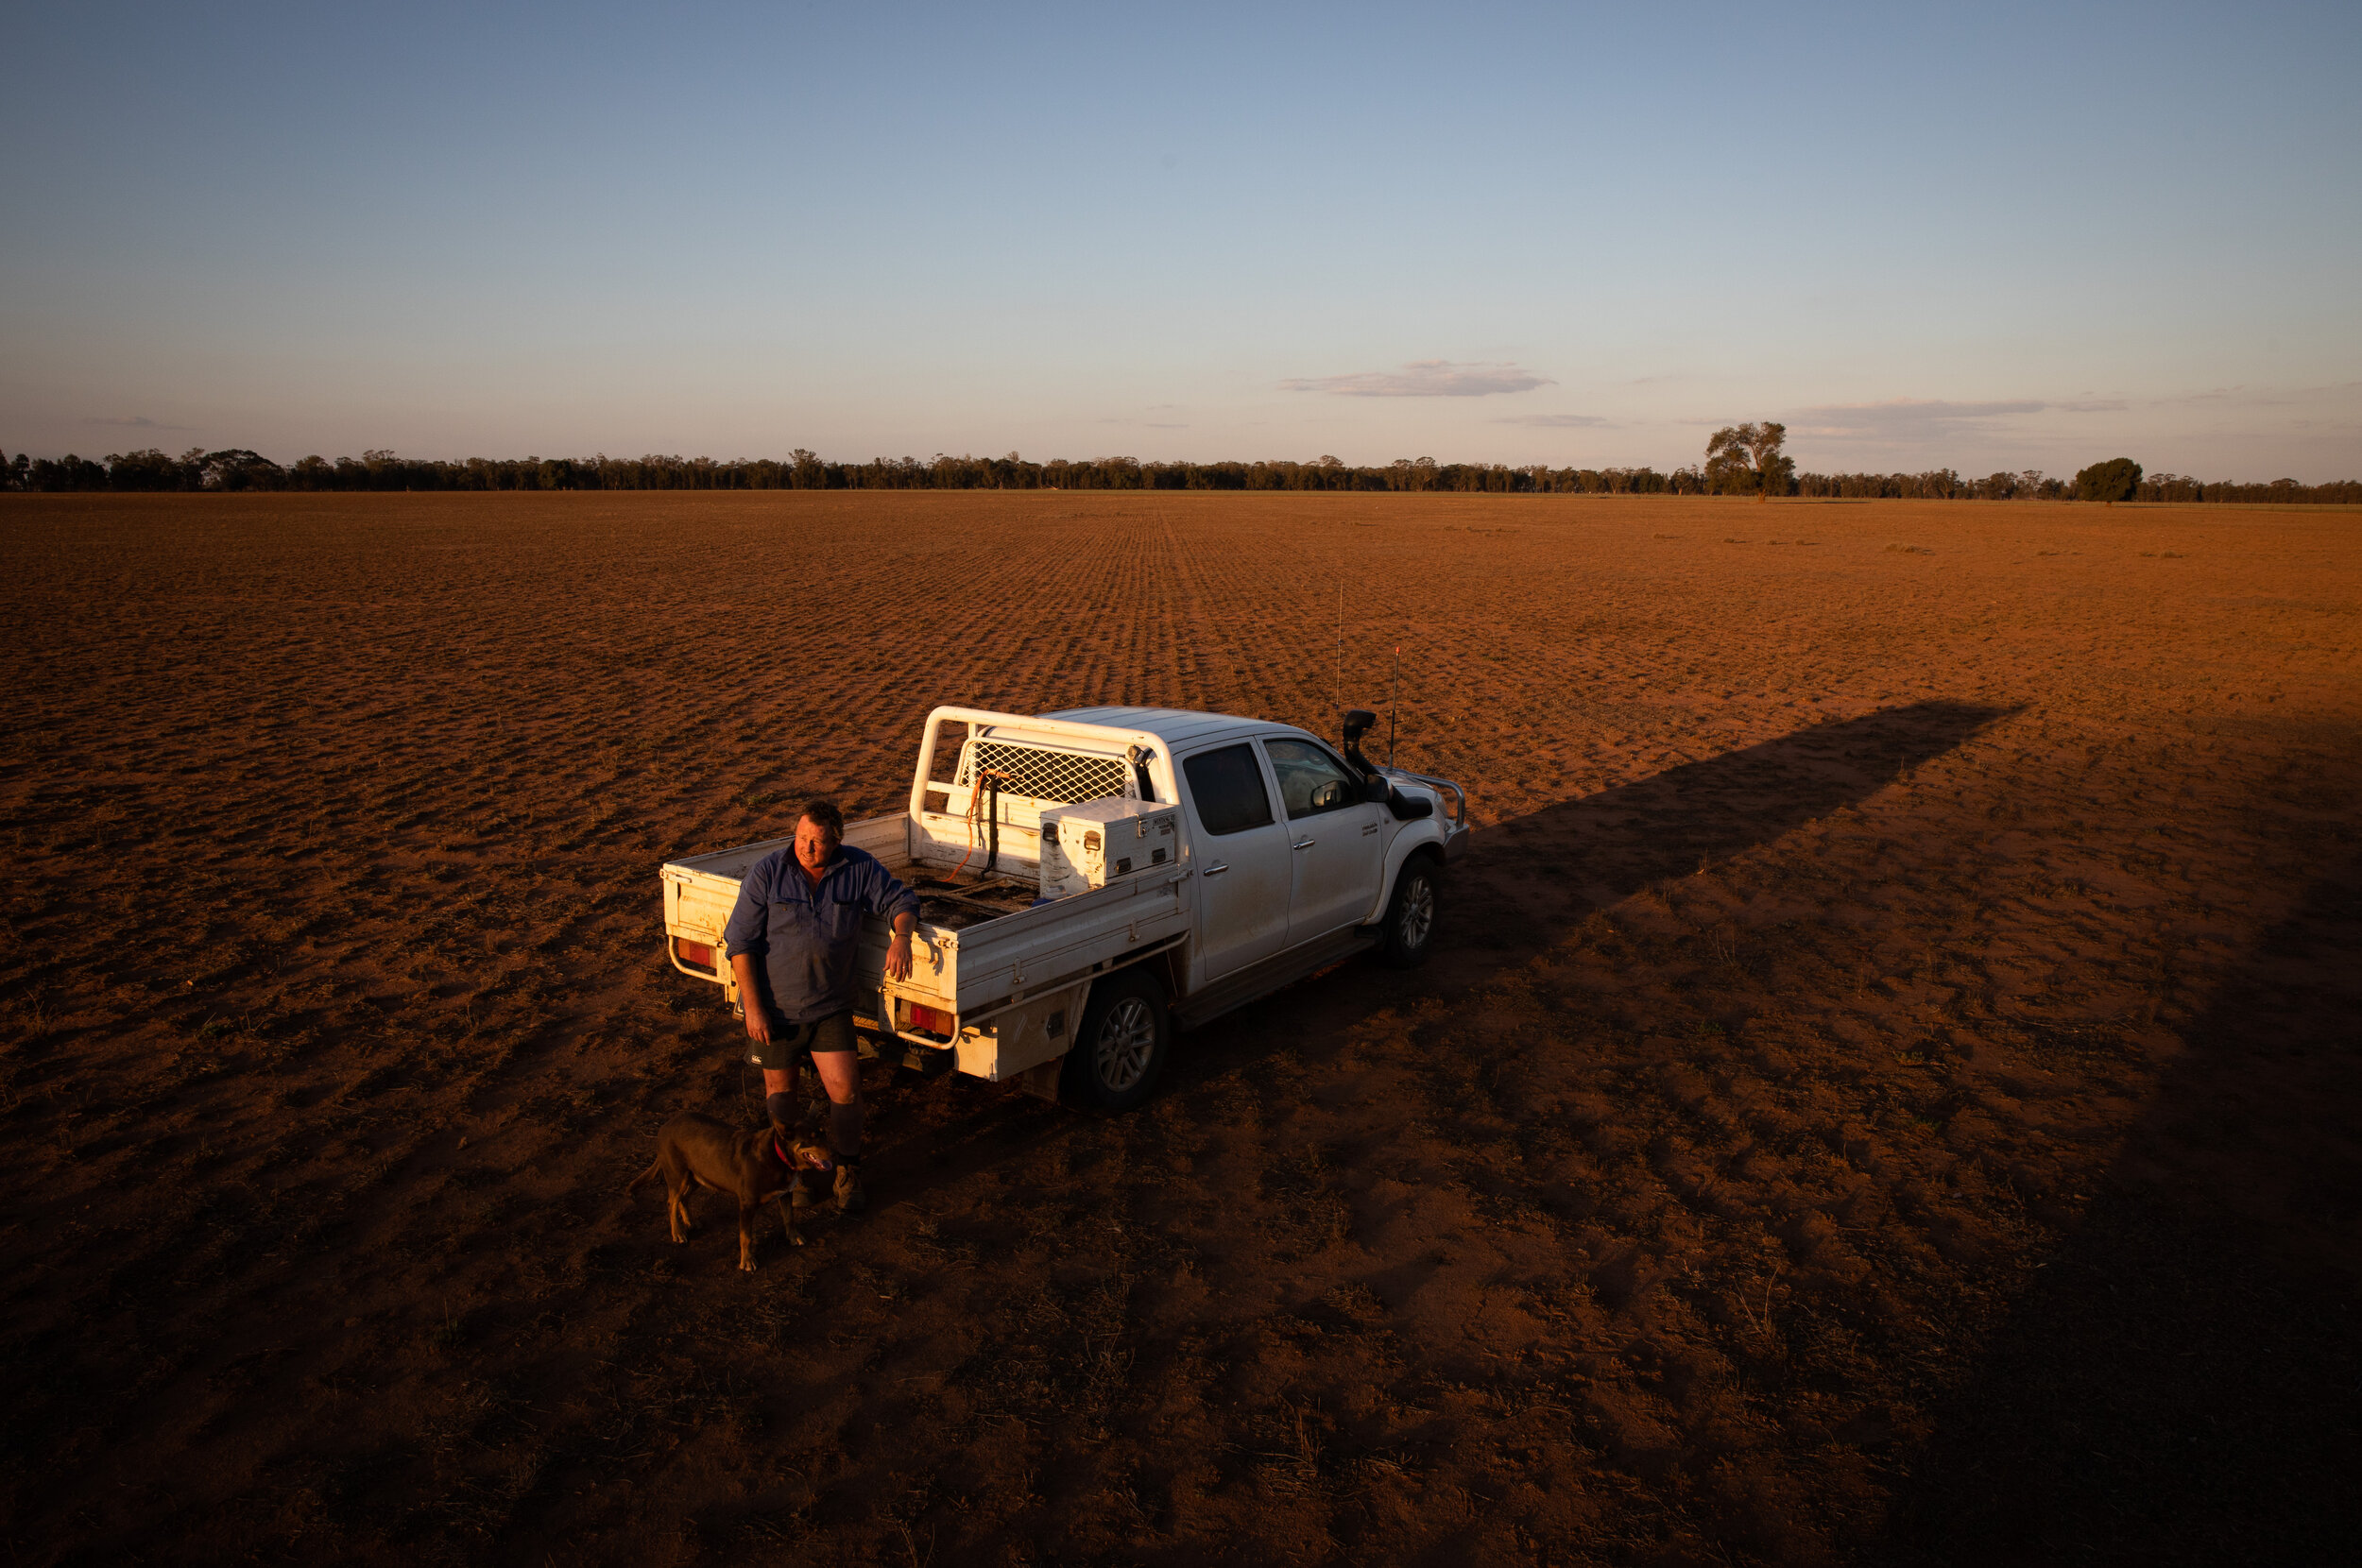 FEATURE ESSAY PHOTOGRAPHY - Drought Western NSW